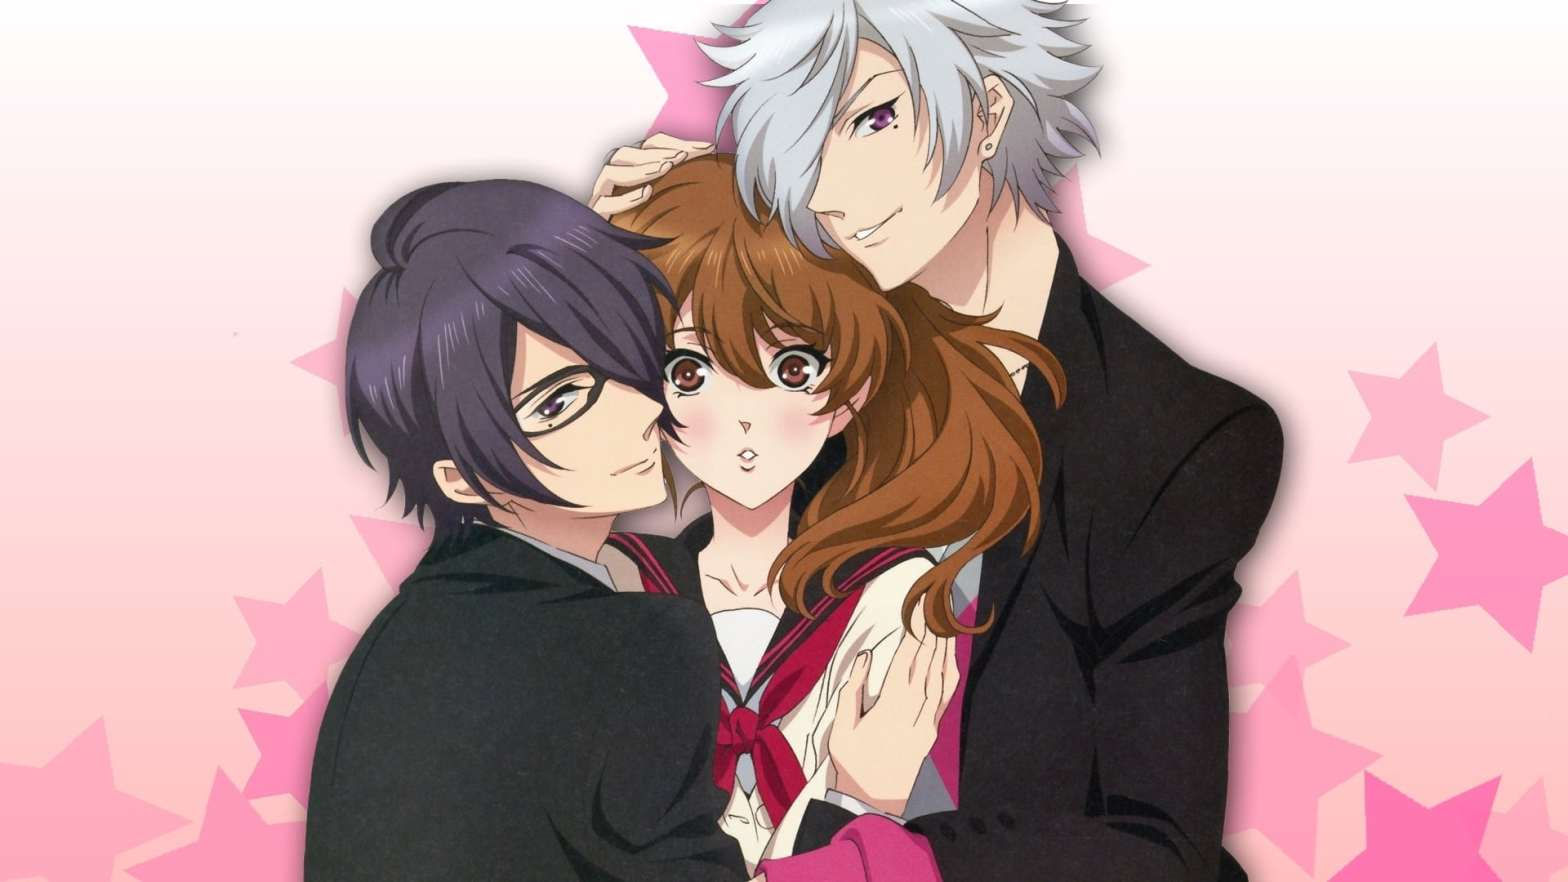 Romance anime like Diabolik Lovers, Brothers Conflict